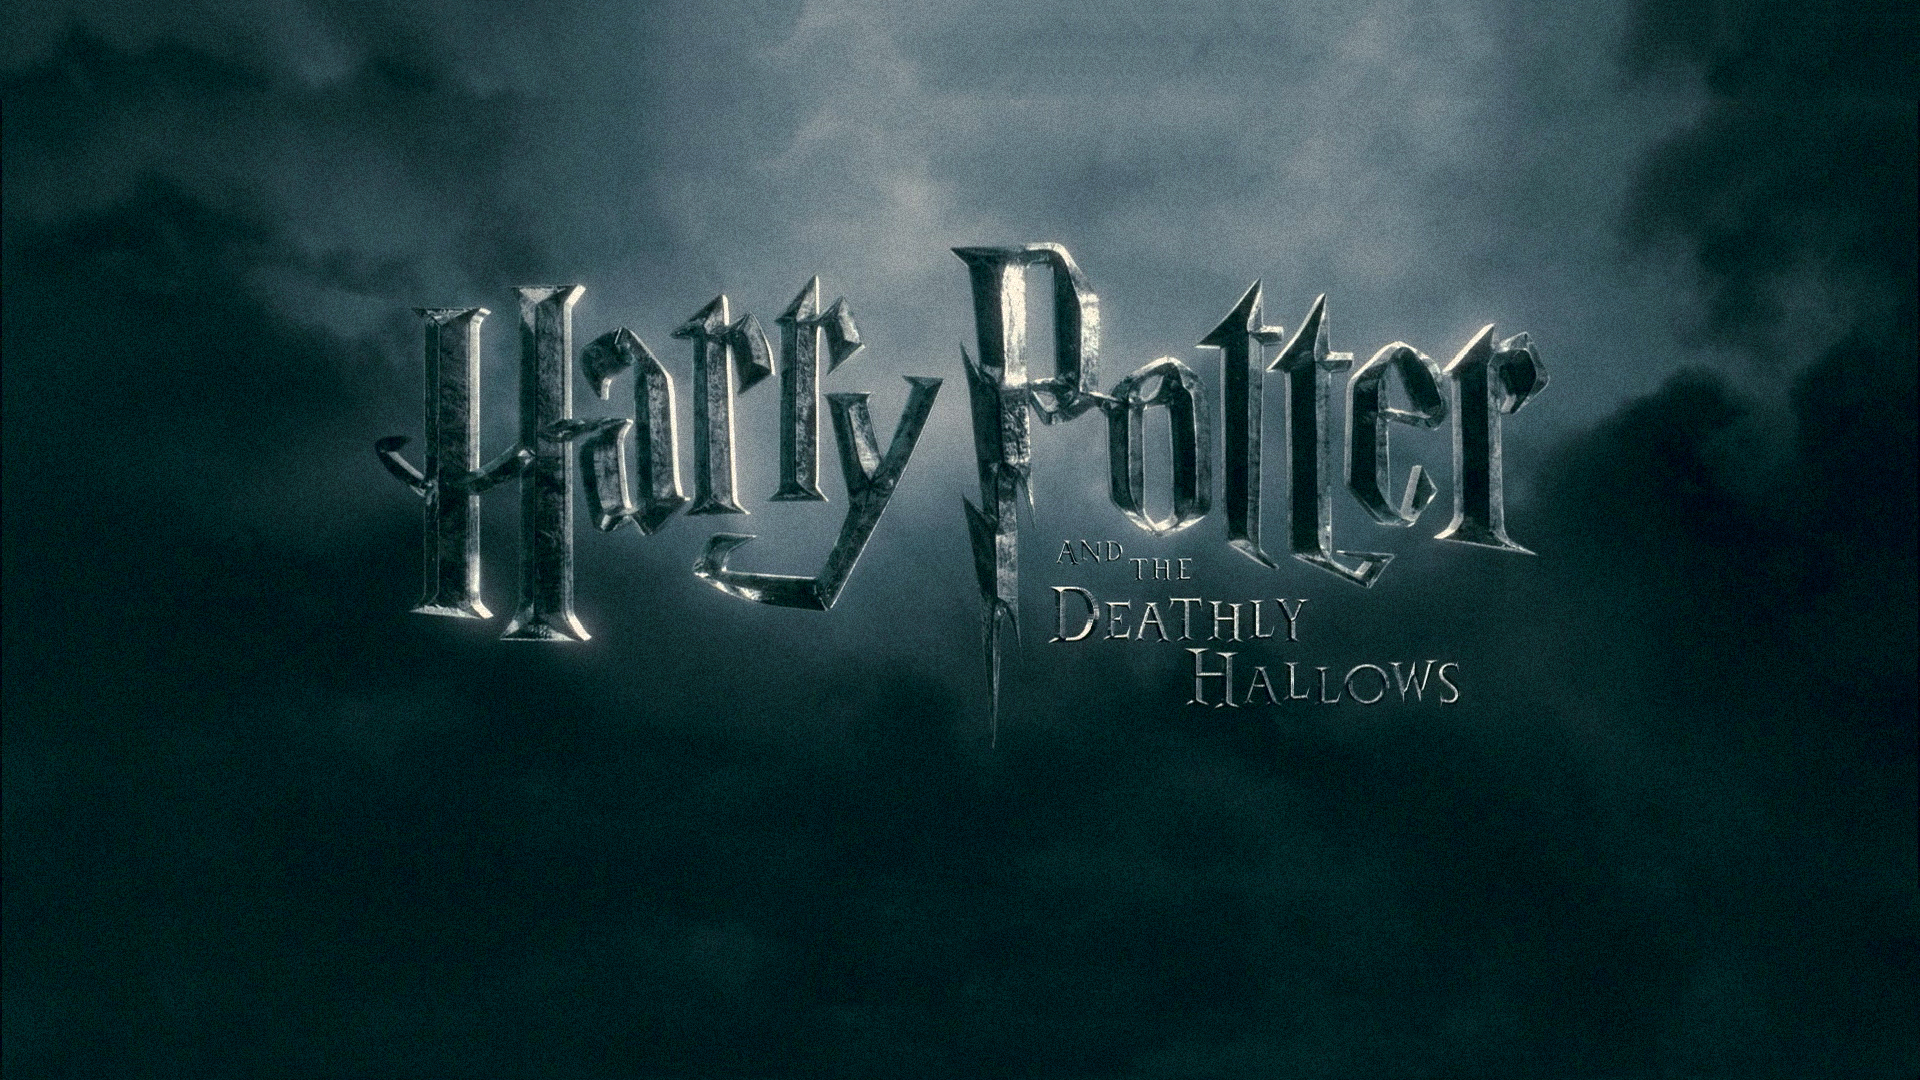 Harry Potter Logo HD Wallpaper, Backgrounds Image